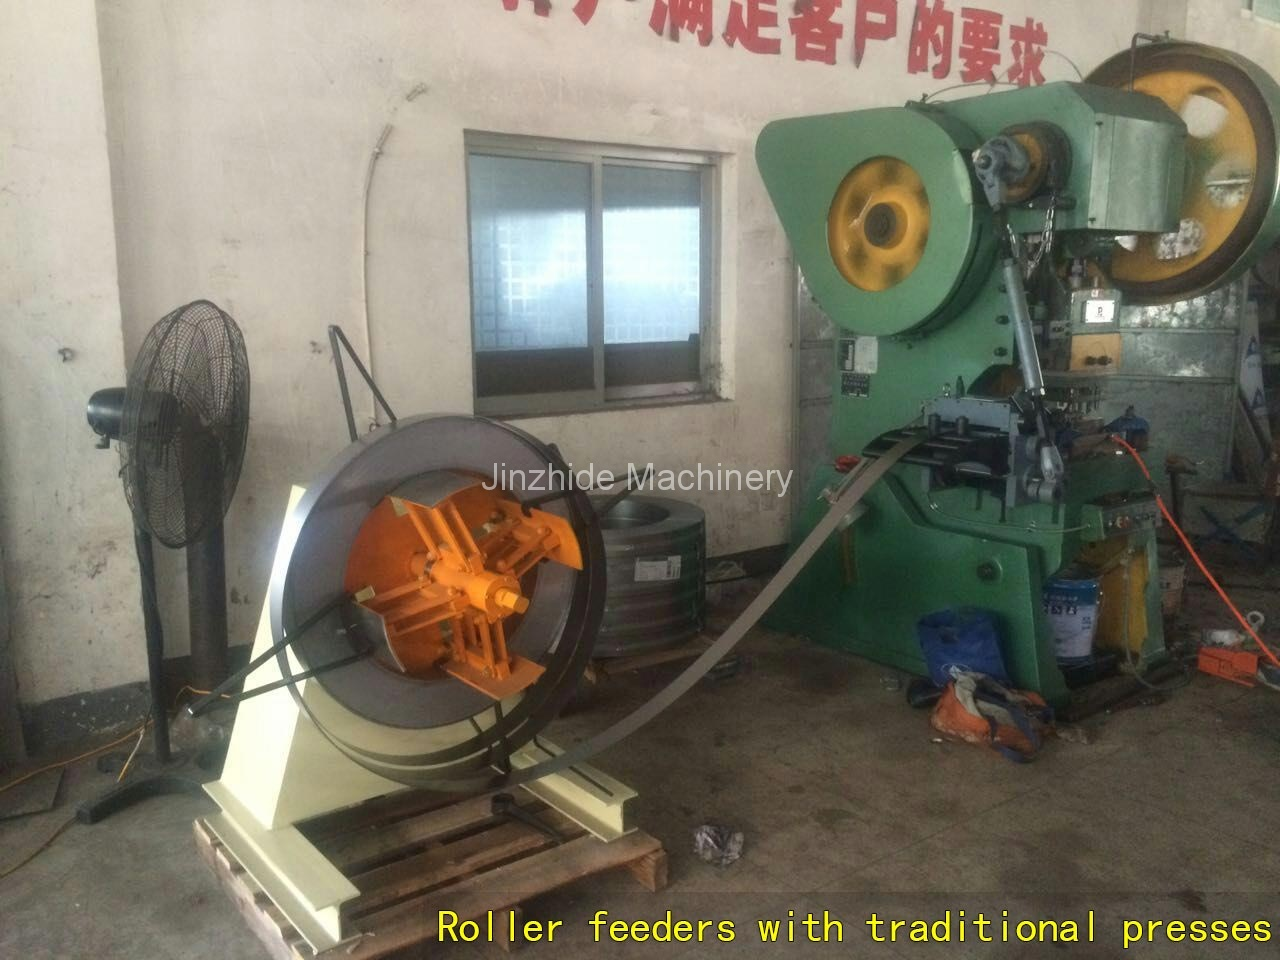 Roller-feeders-with-traditional-presses